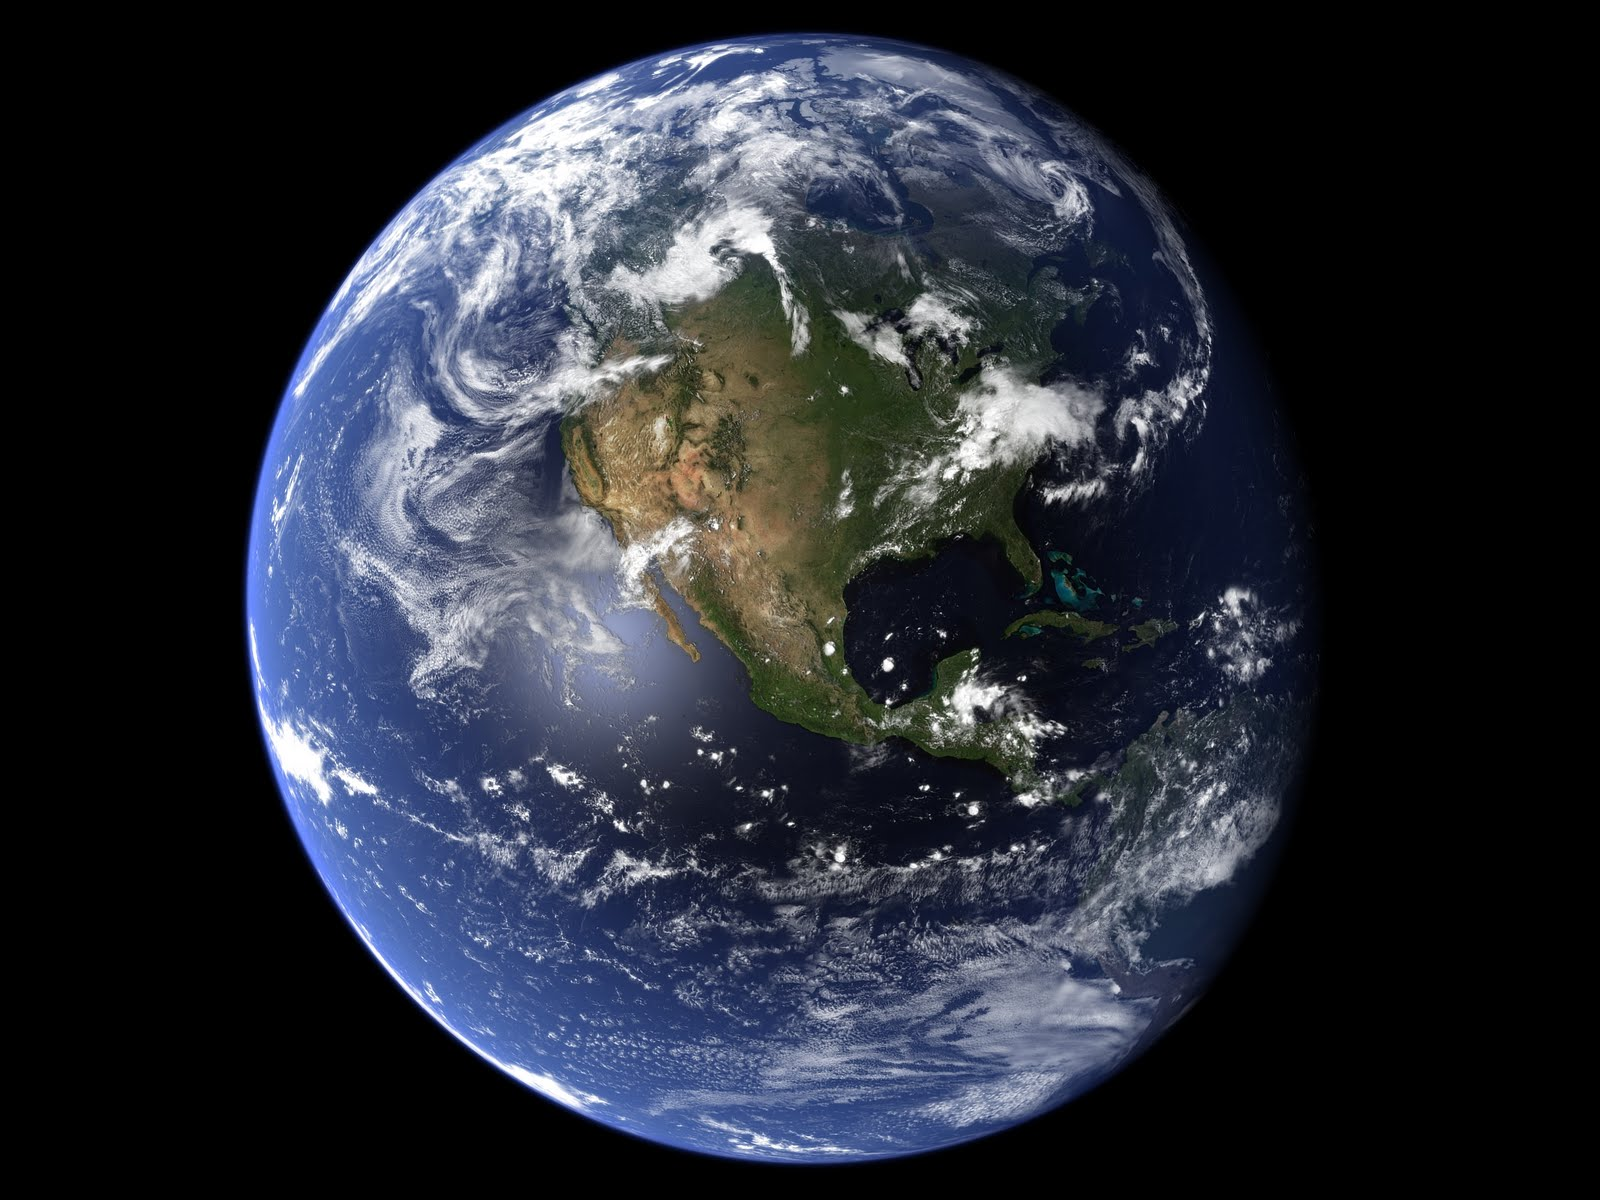 nasa photos earth - photo #24